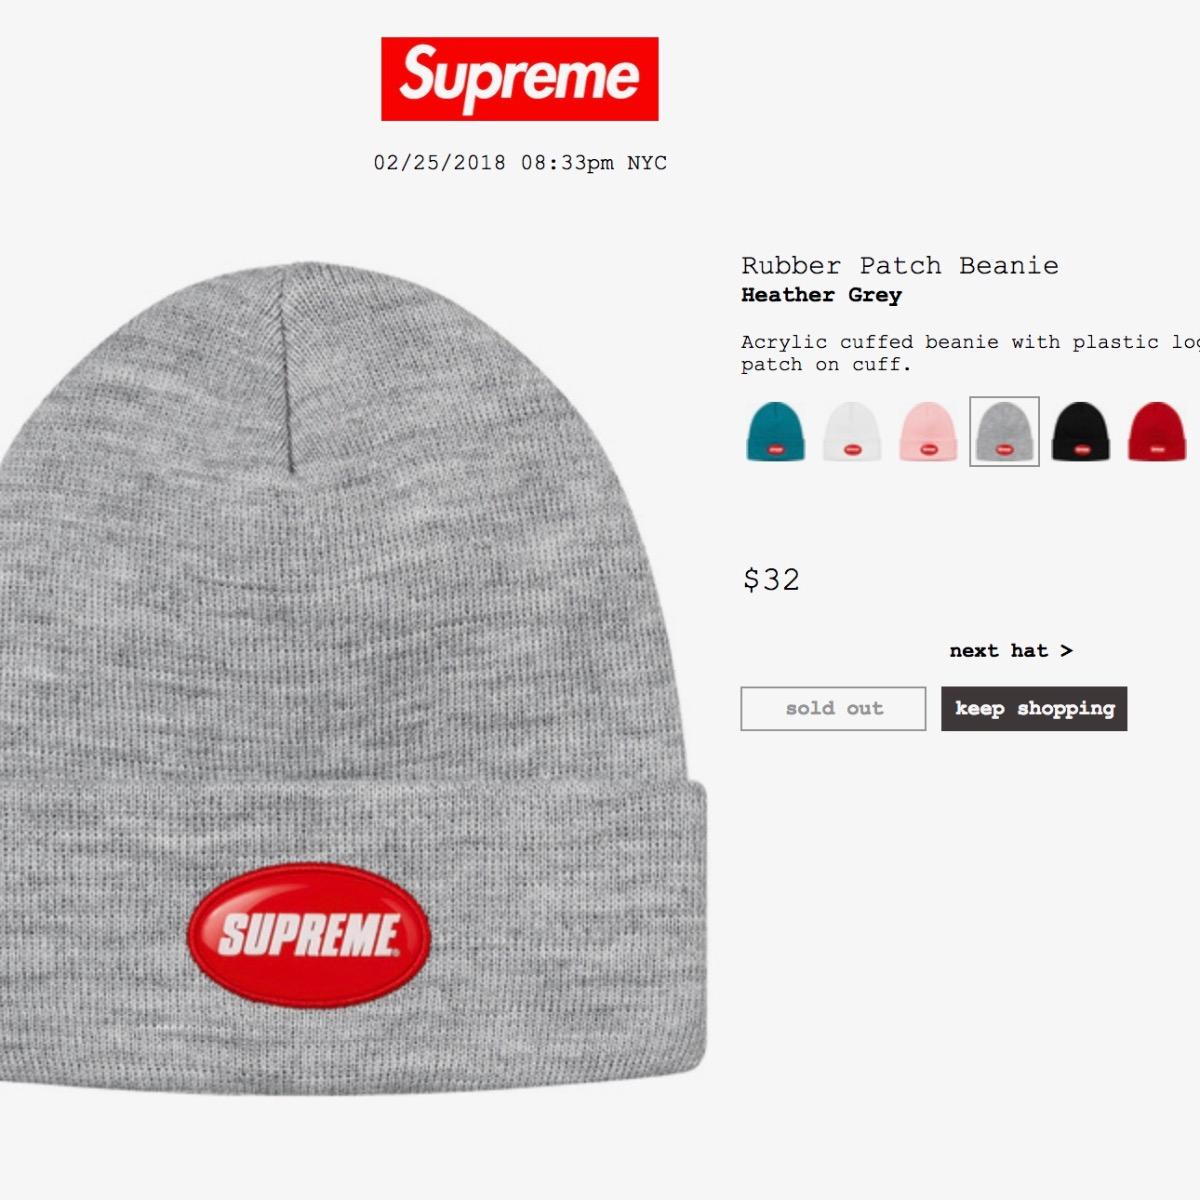 84c19c525df Supreme Rubber Patch Beanie • Hats • Strictlypreme